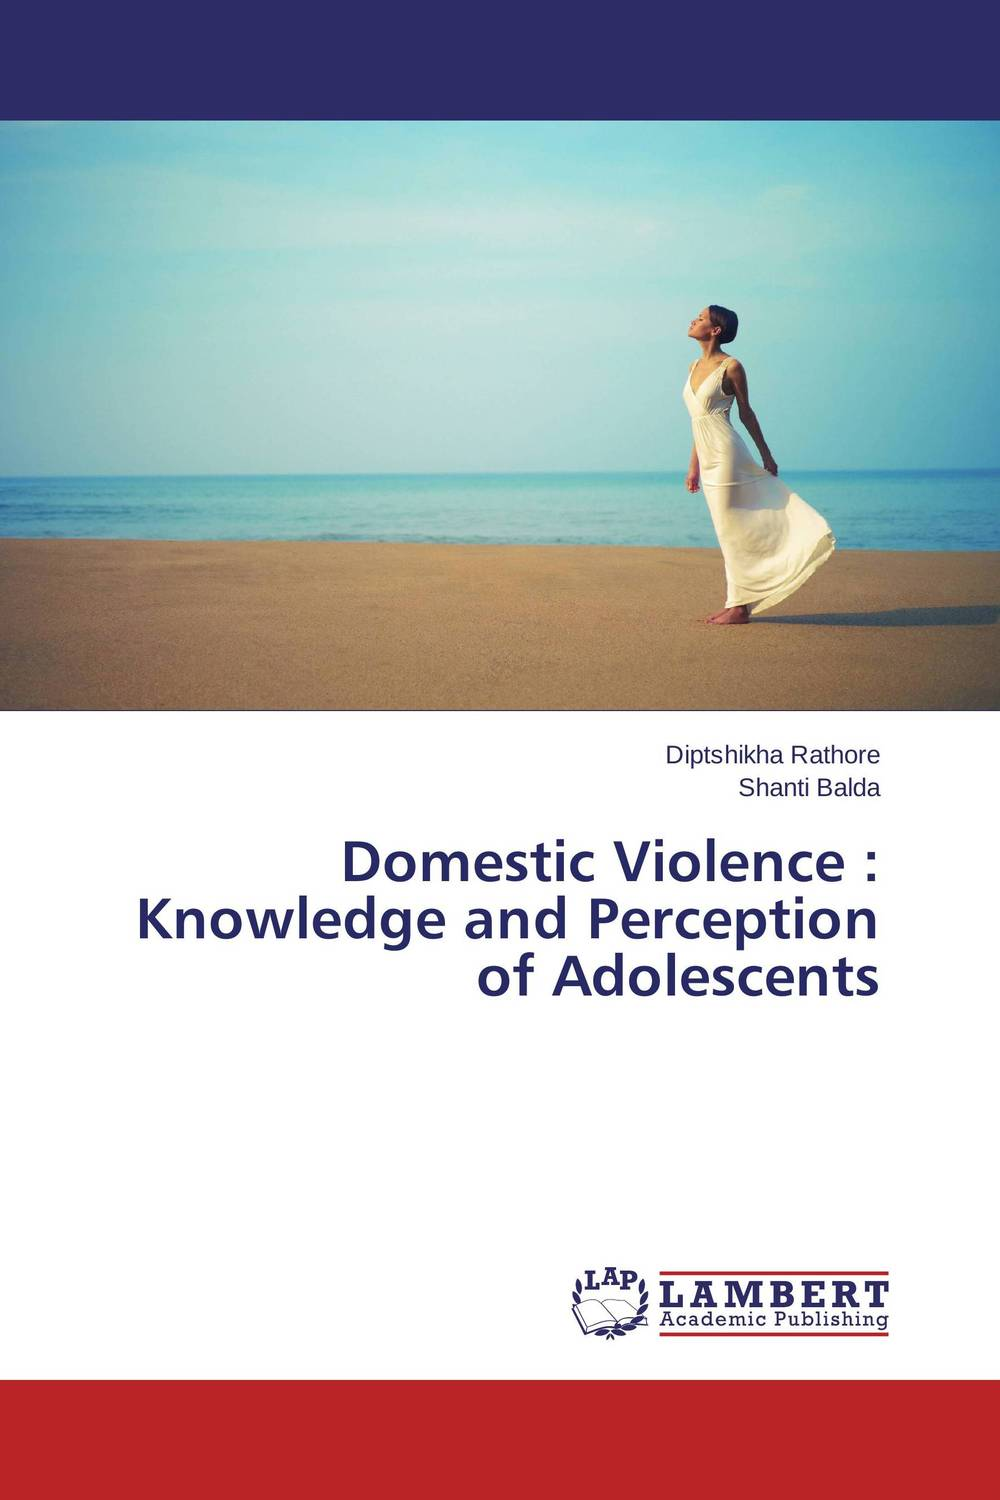 Domestic Violence : Knowledge and Perception of Adolescents ripudaman singh arihant kaur bhalla and er gurkamal singh adolescents of intact families and orphanages